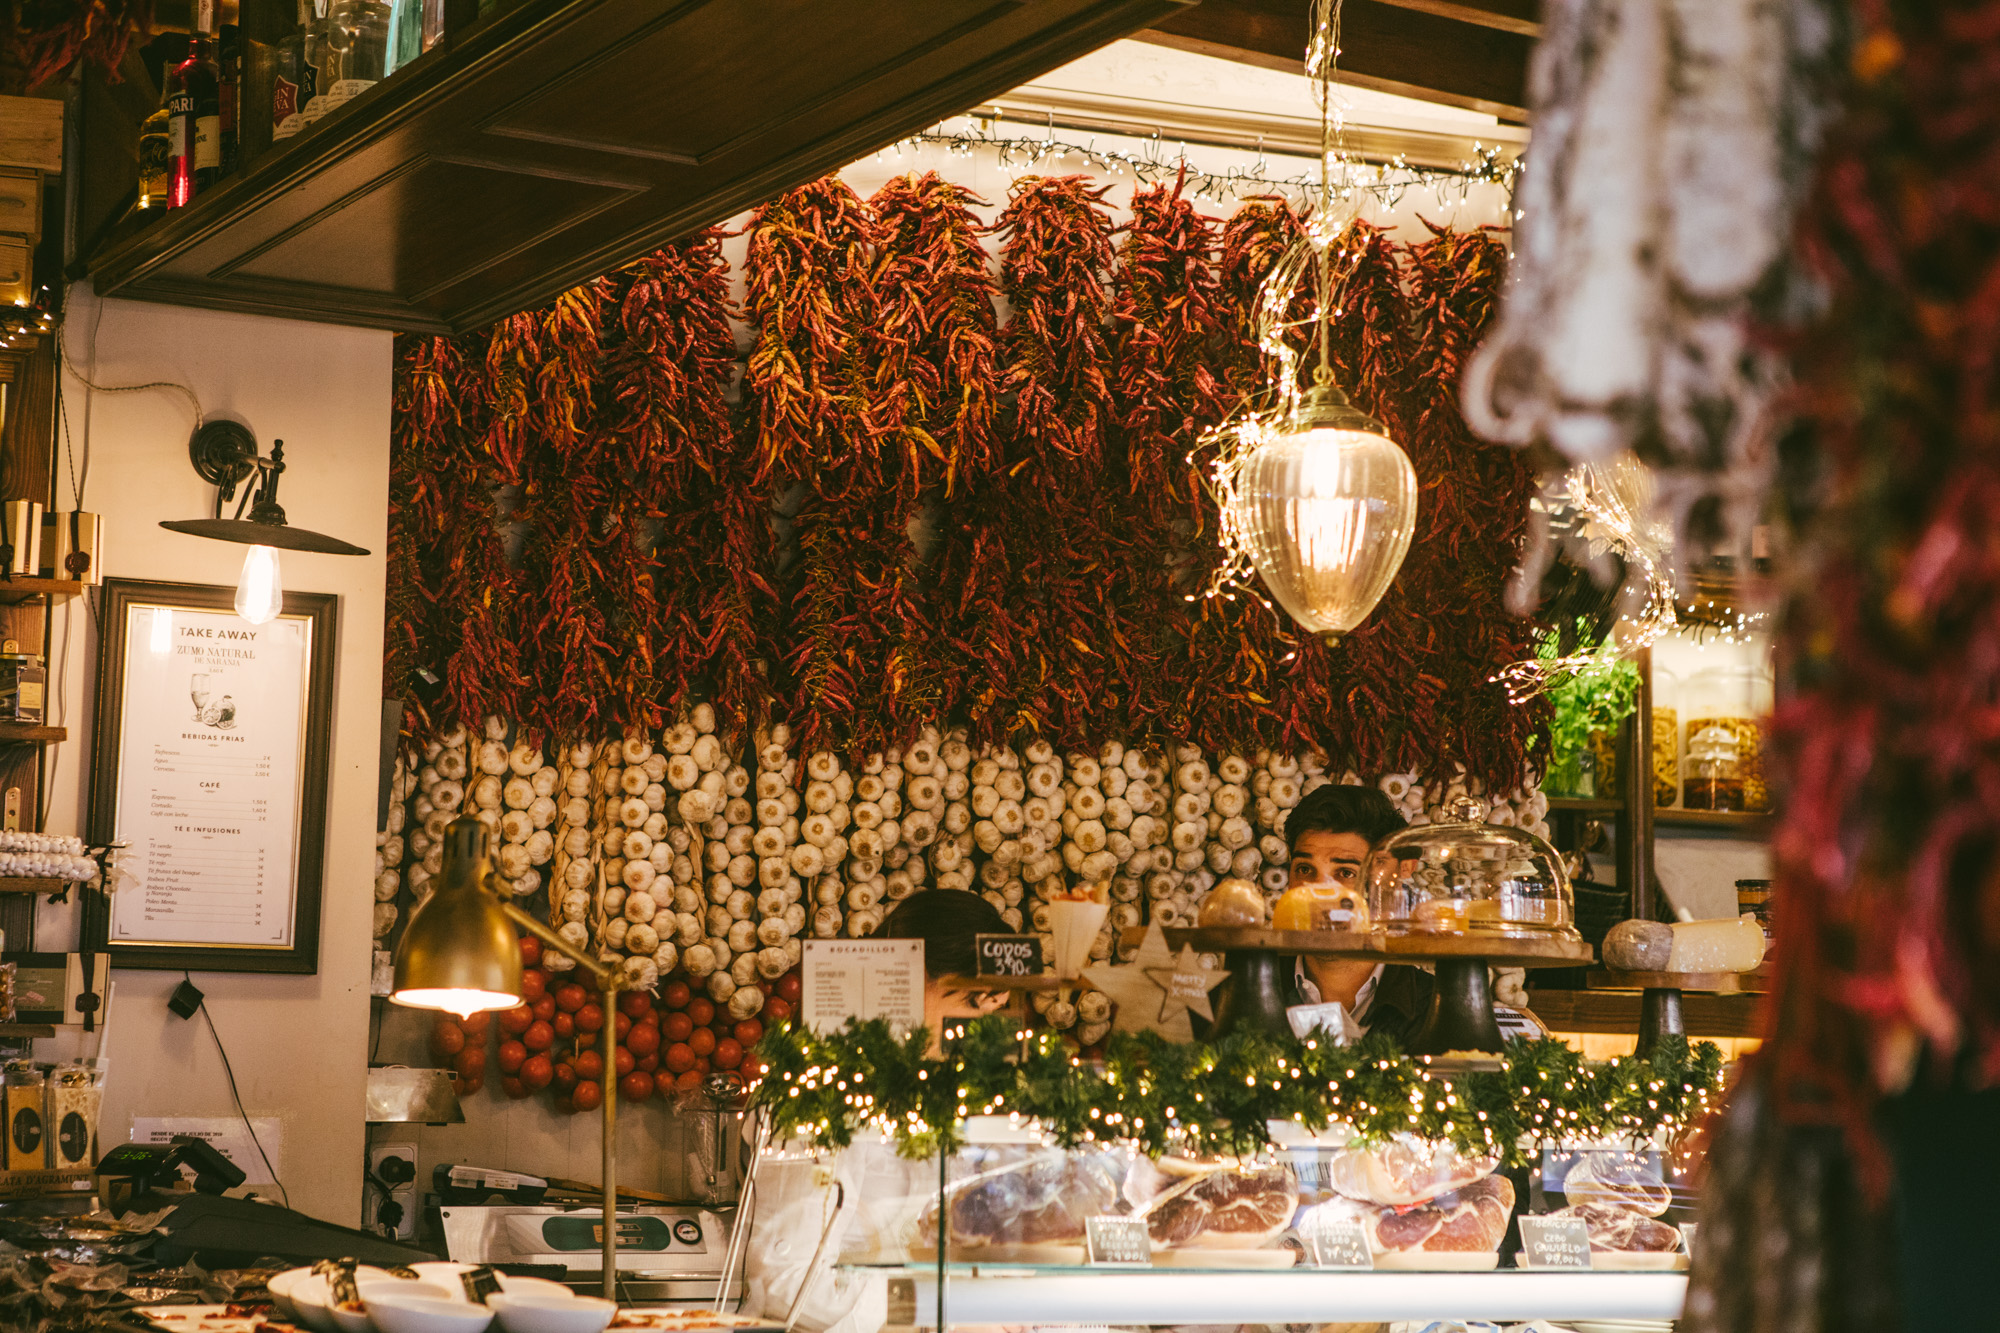 A wall of chilis and garlic in one of the cafes!